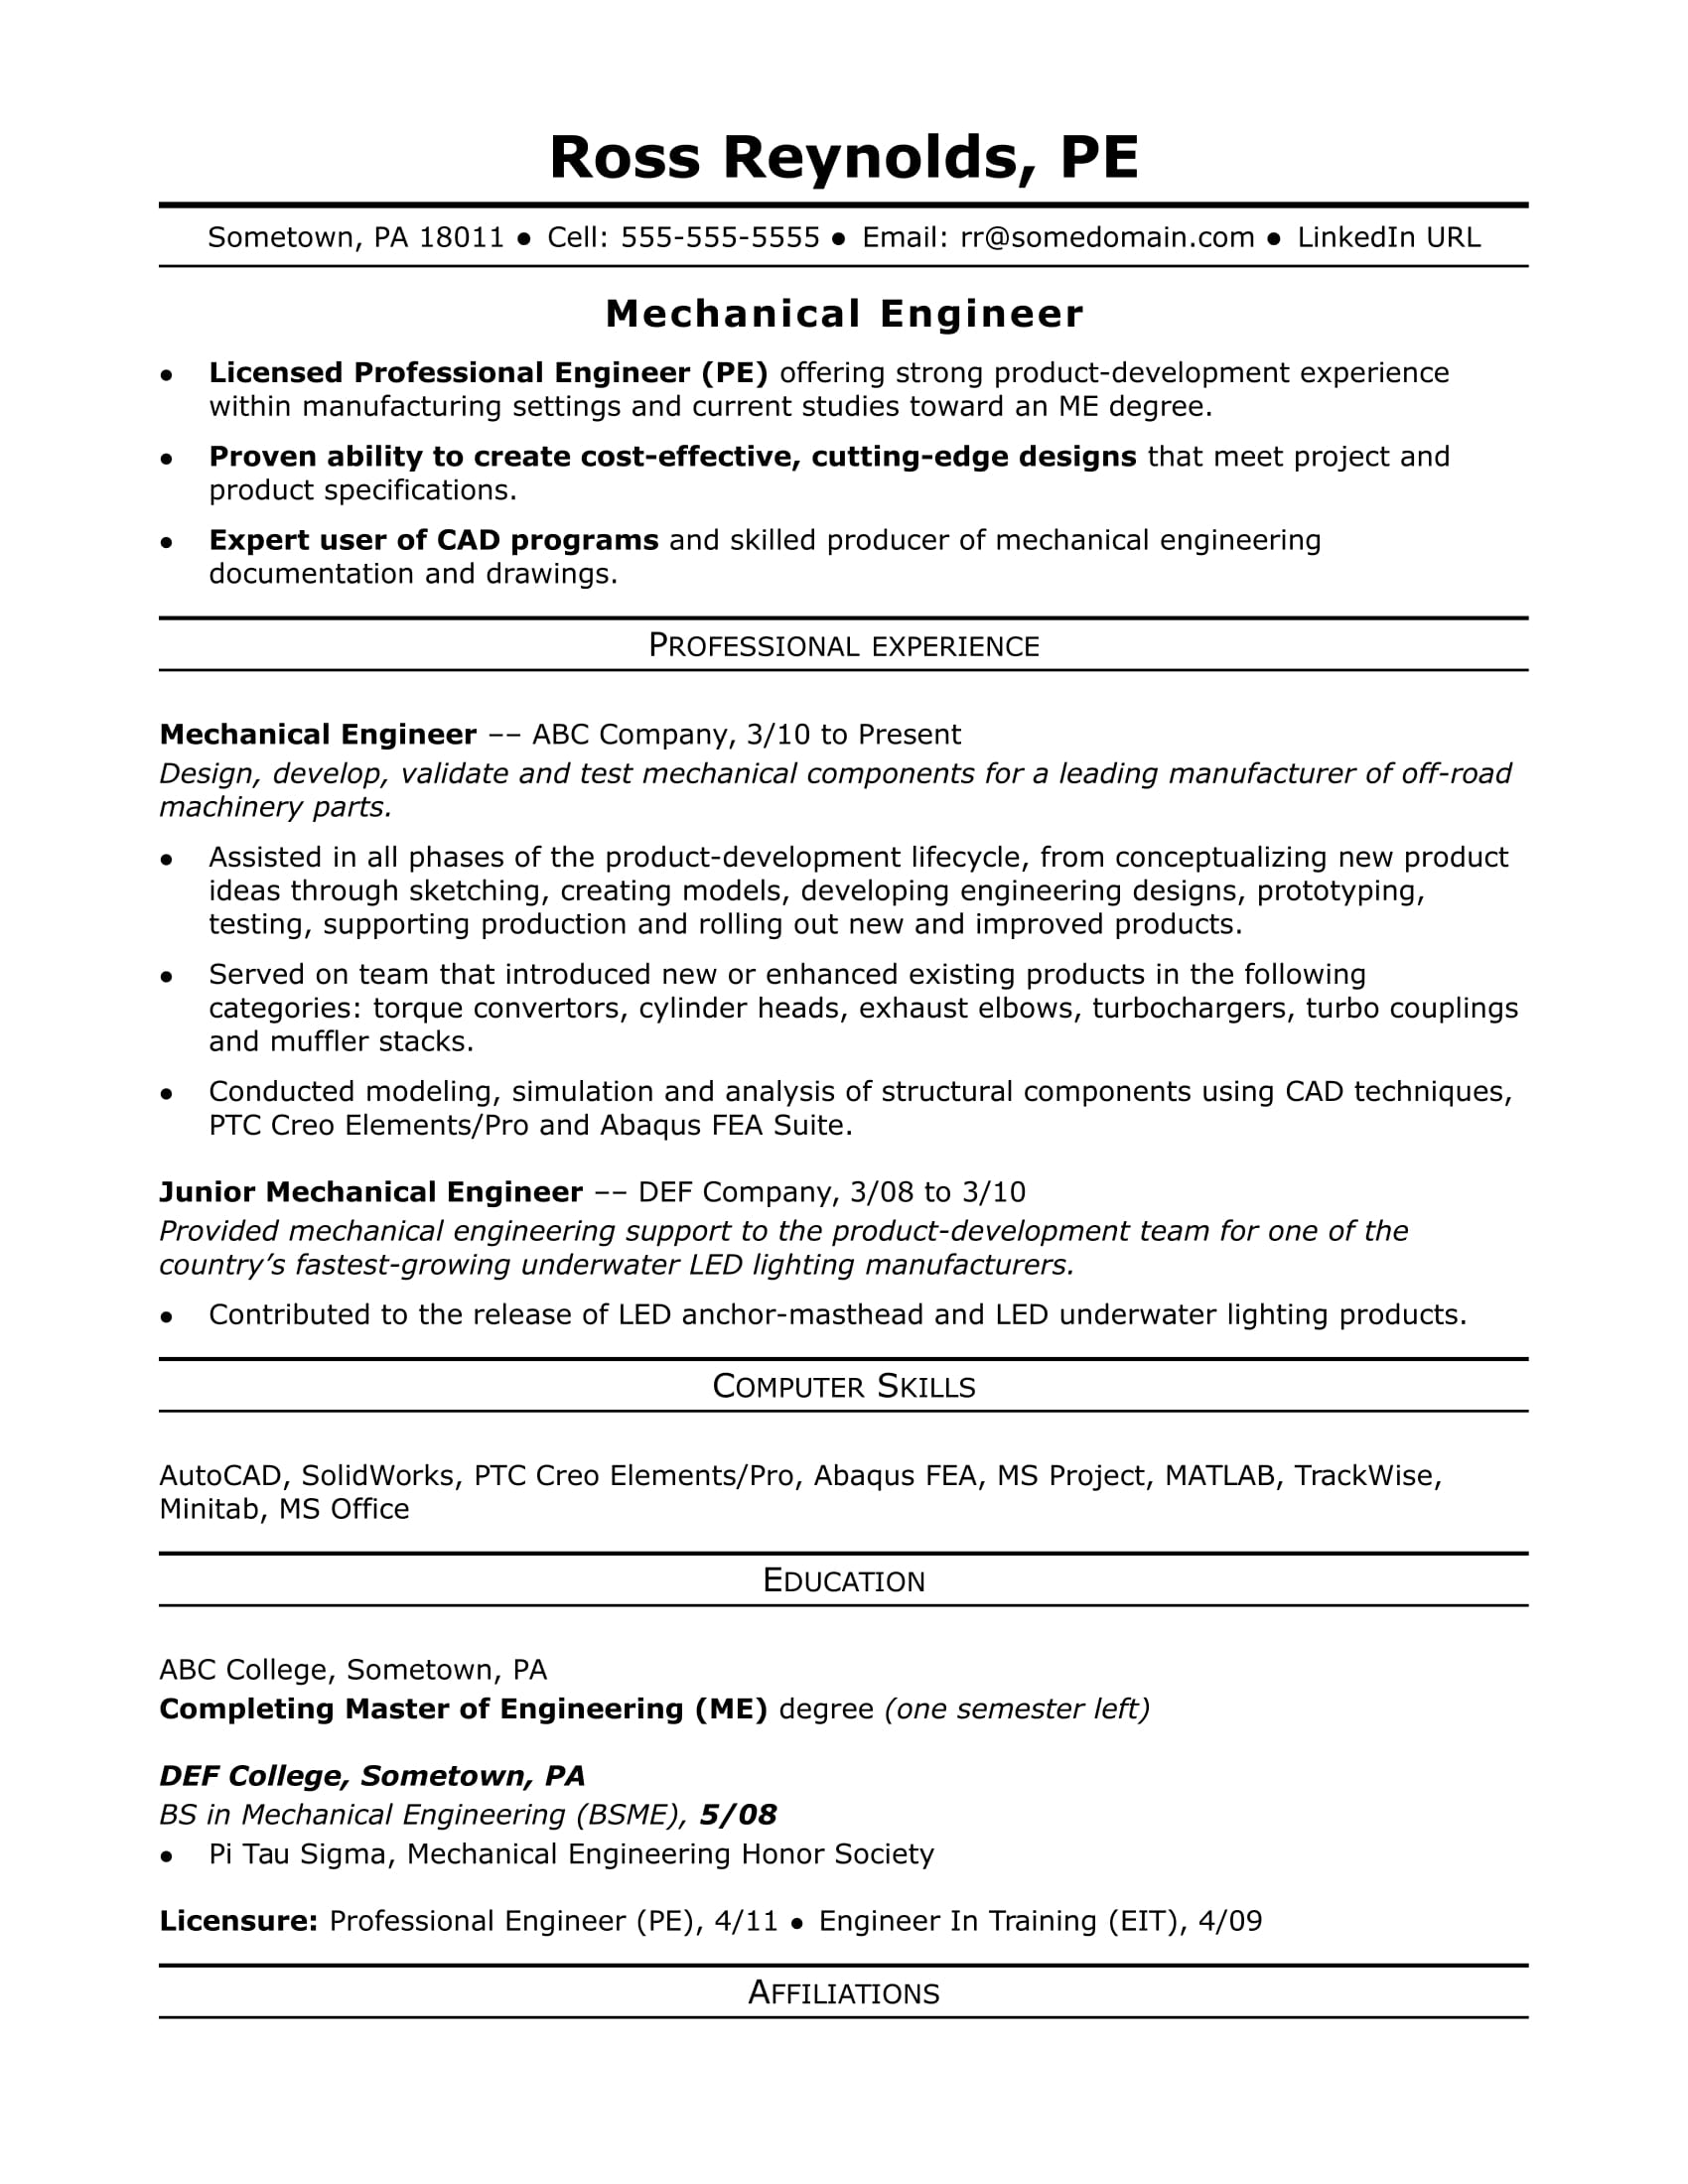 Service Engineer Resume Format Sample Resume For A Midlevel Mechanical Engineer Monster